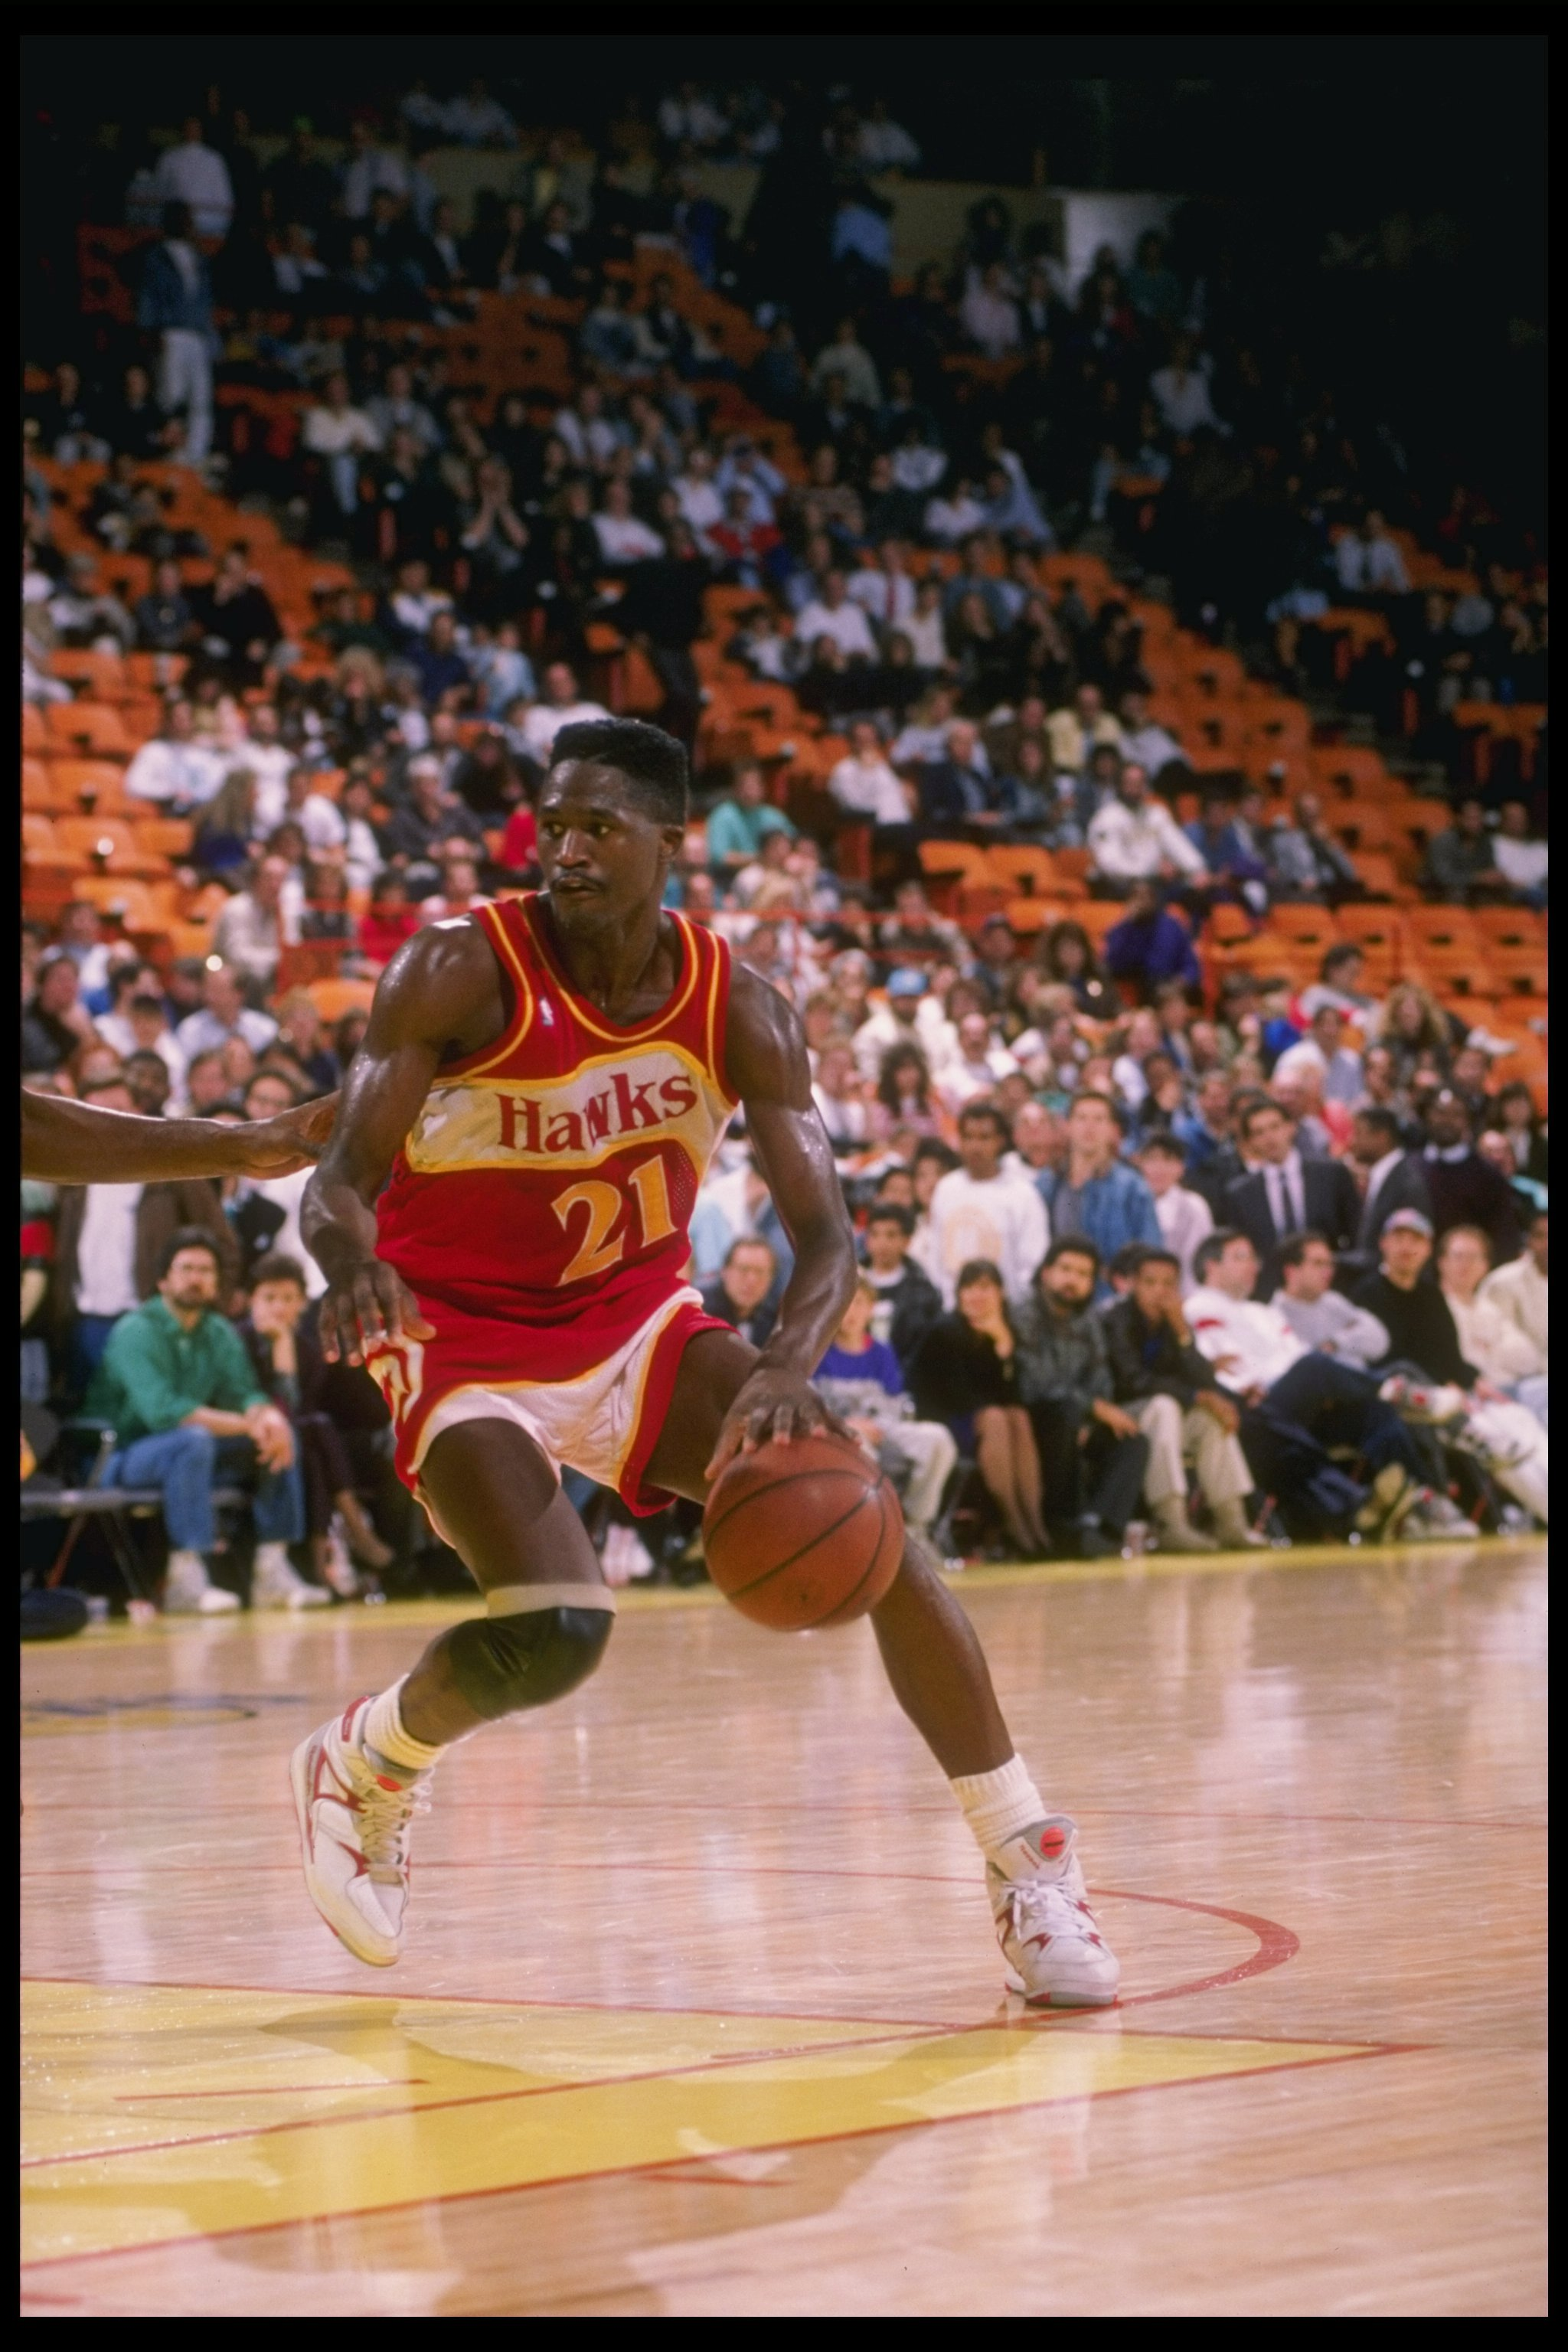 Forward Dominique Wilkins of the Atlanta Hawks dribbles down the court during a game.